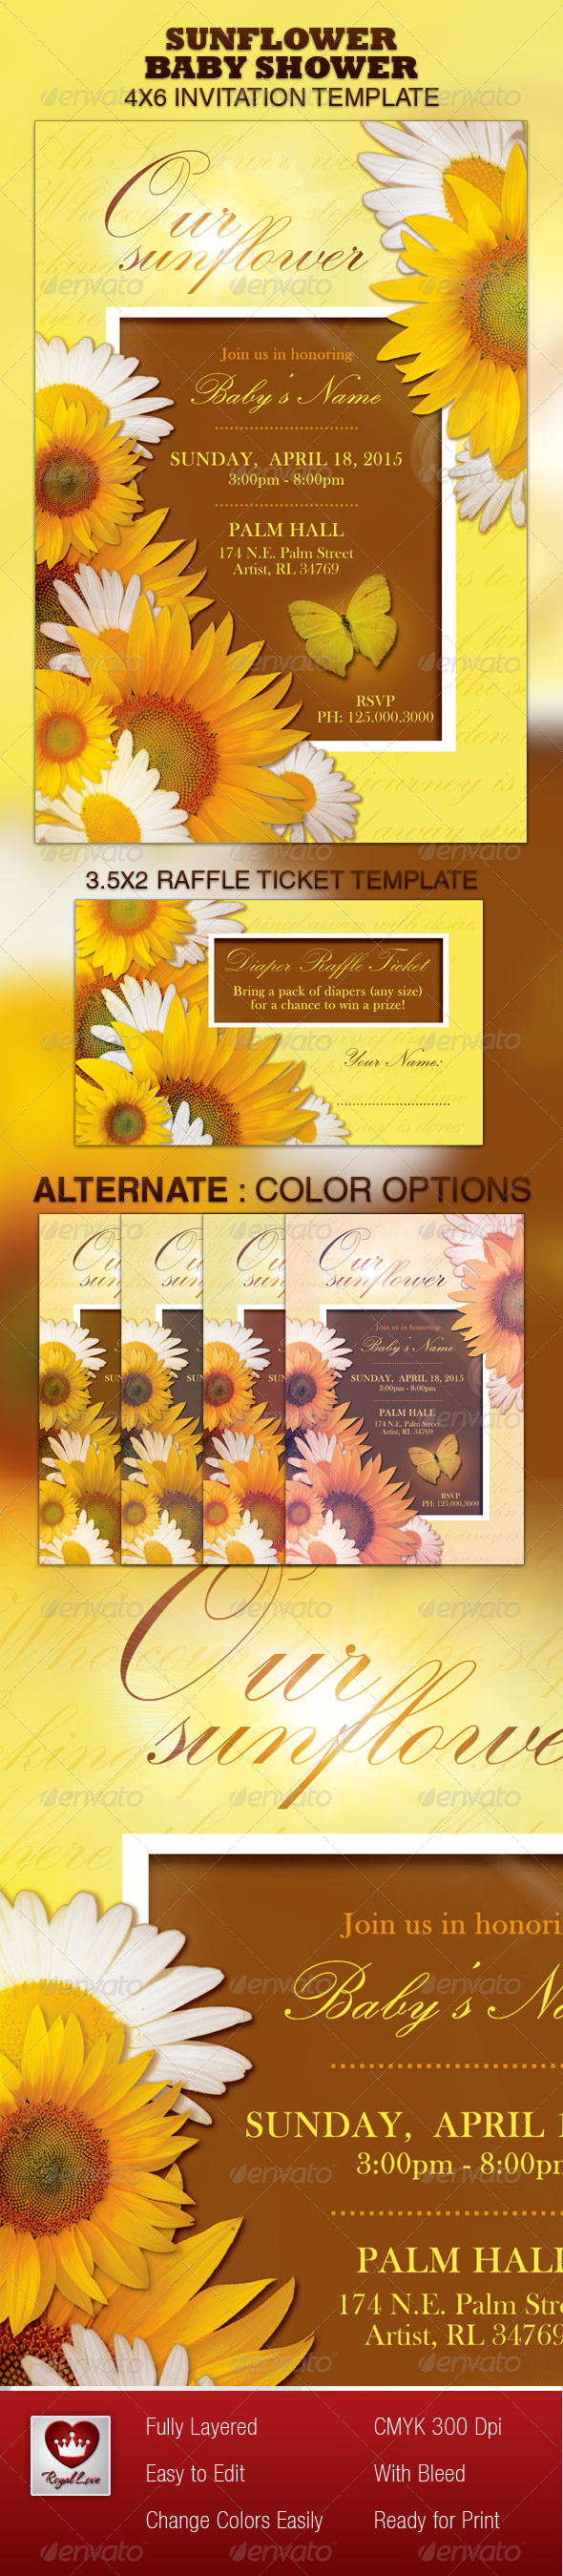 GraphicRiver Sunflower Baby Shower Invitation & Raffle Ticket 4107349